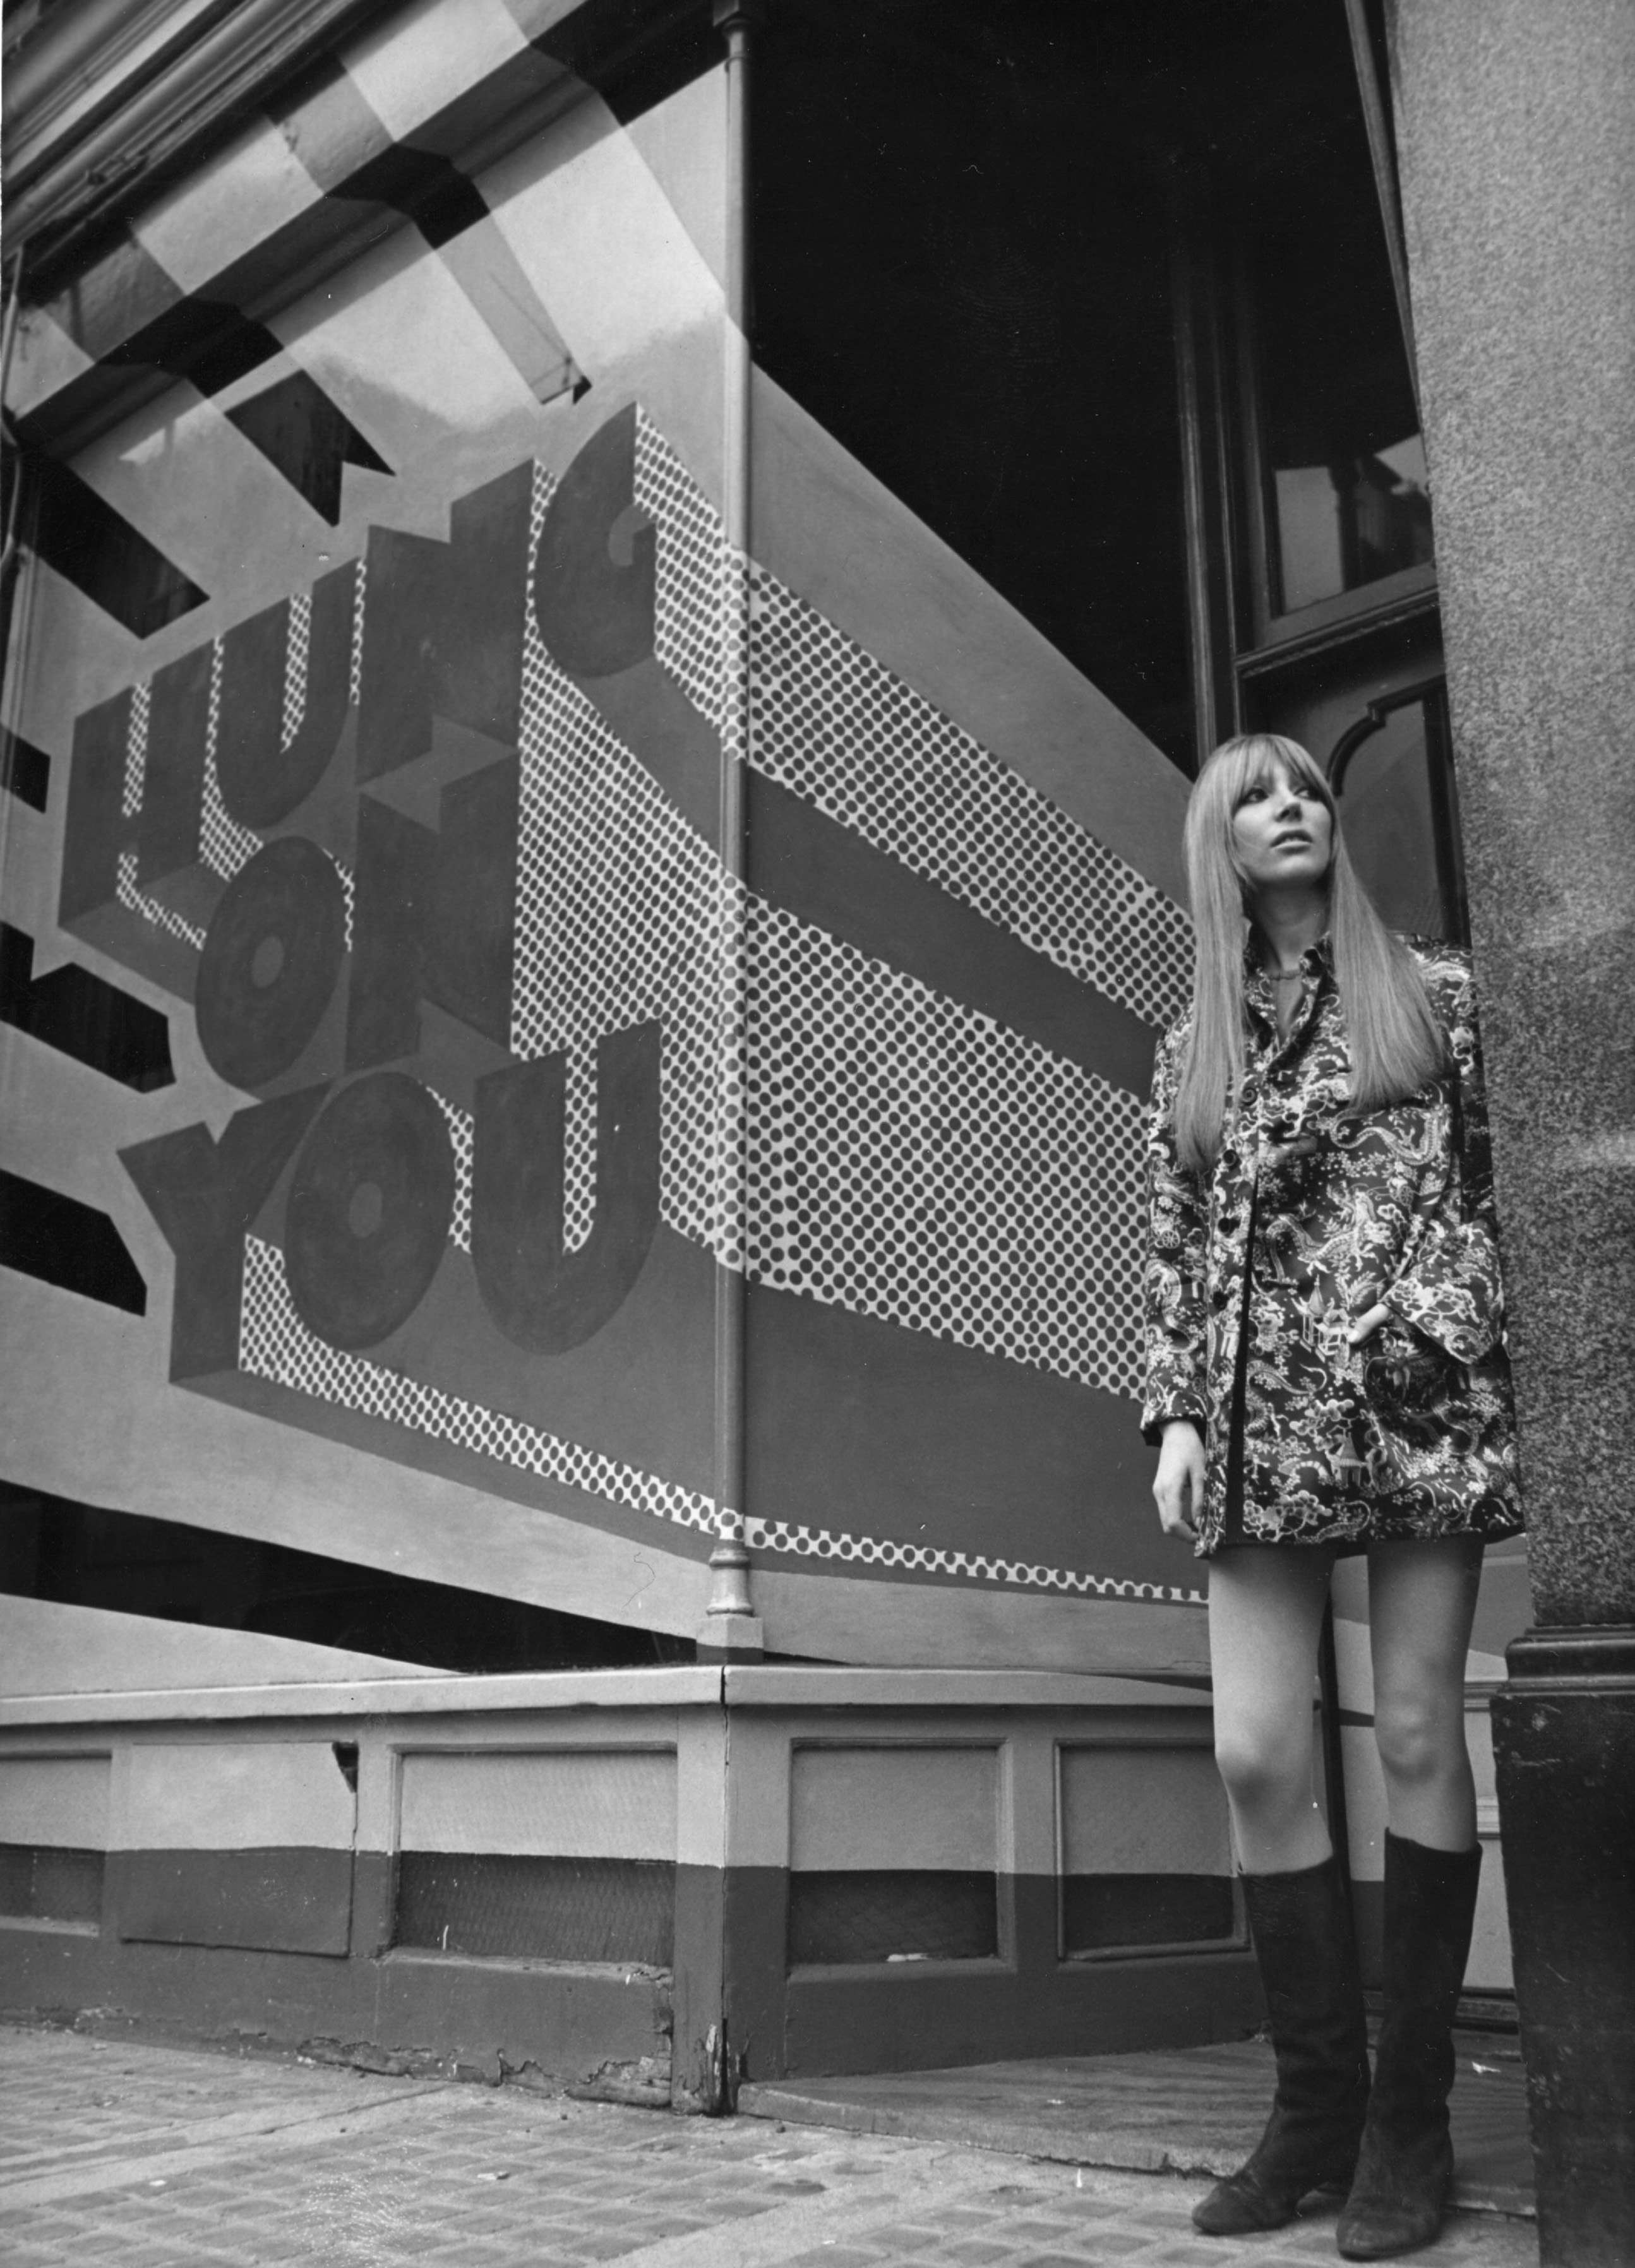 A fashionably dressed girl outside Hung on You, on Cale Street, Chelsea, February 1967.  (Photo by George Freston/Getty Images)